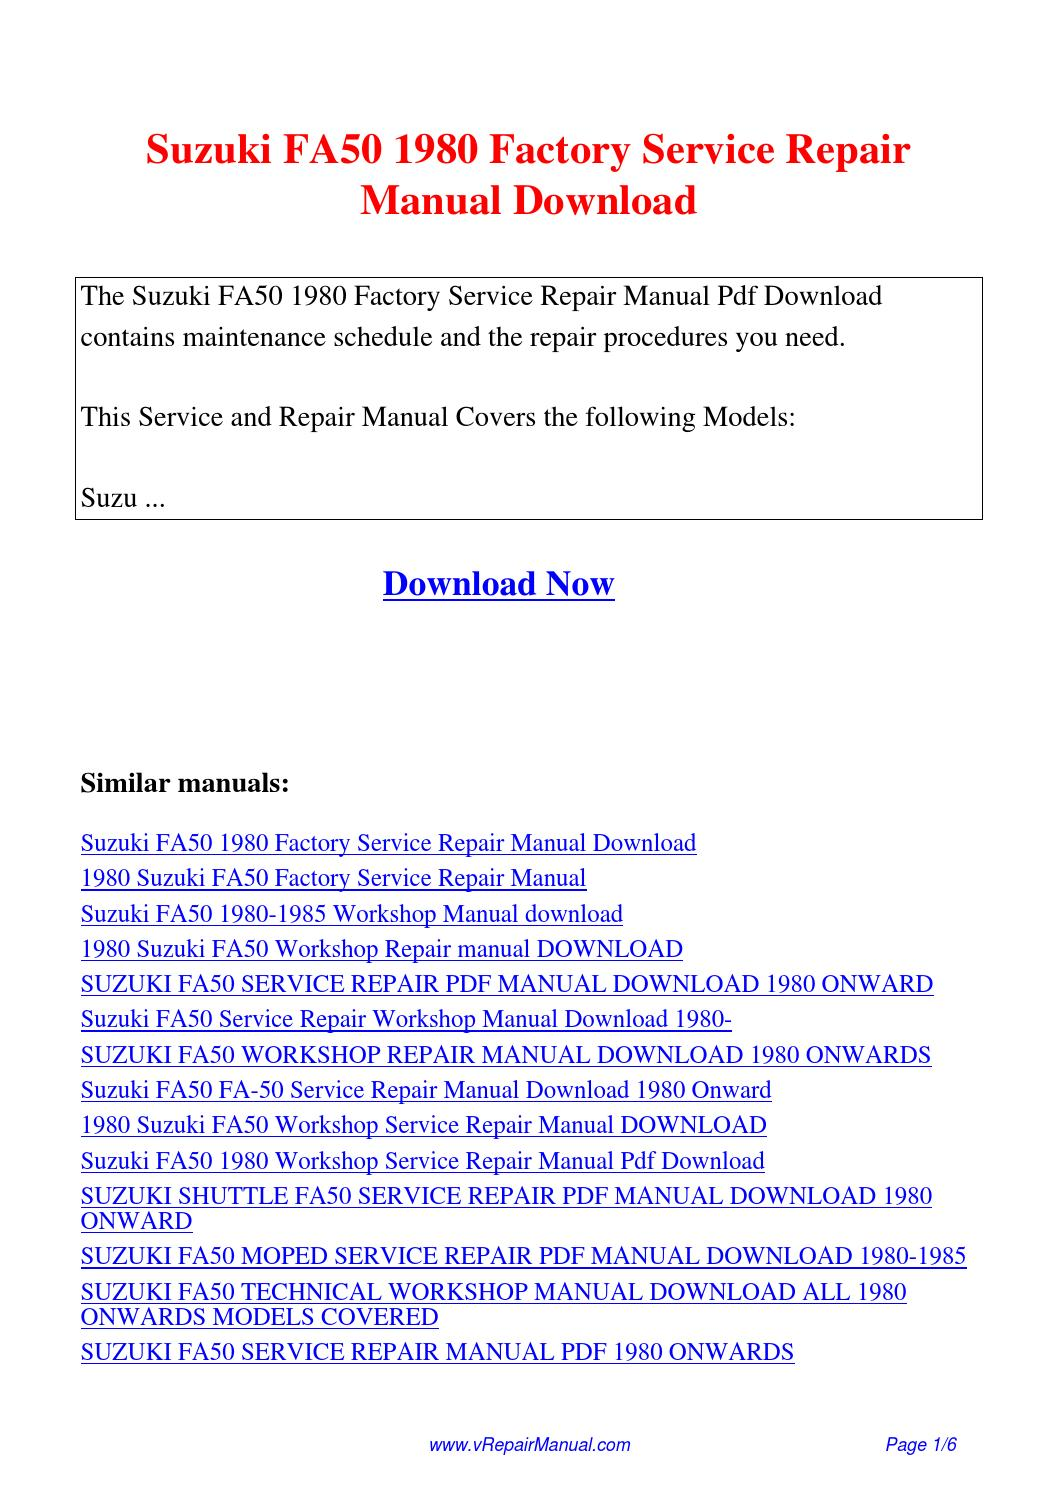 Suzuki FA50 1980 Factory Service Repair Manual.pdf by David Zhang - issuu